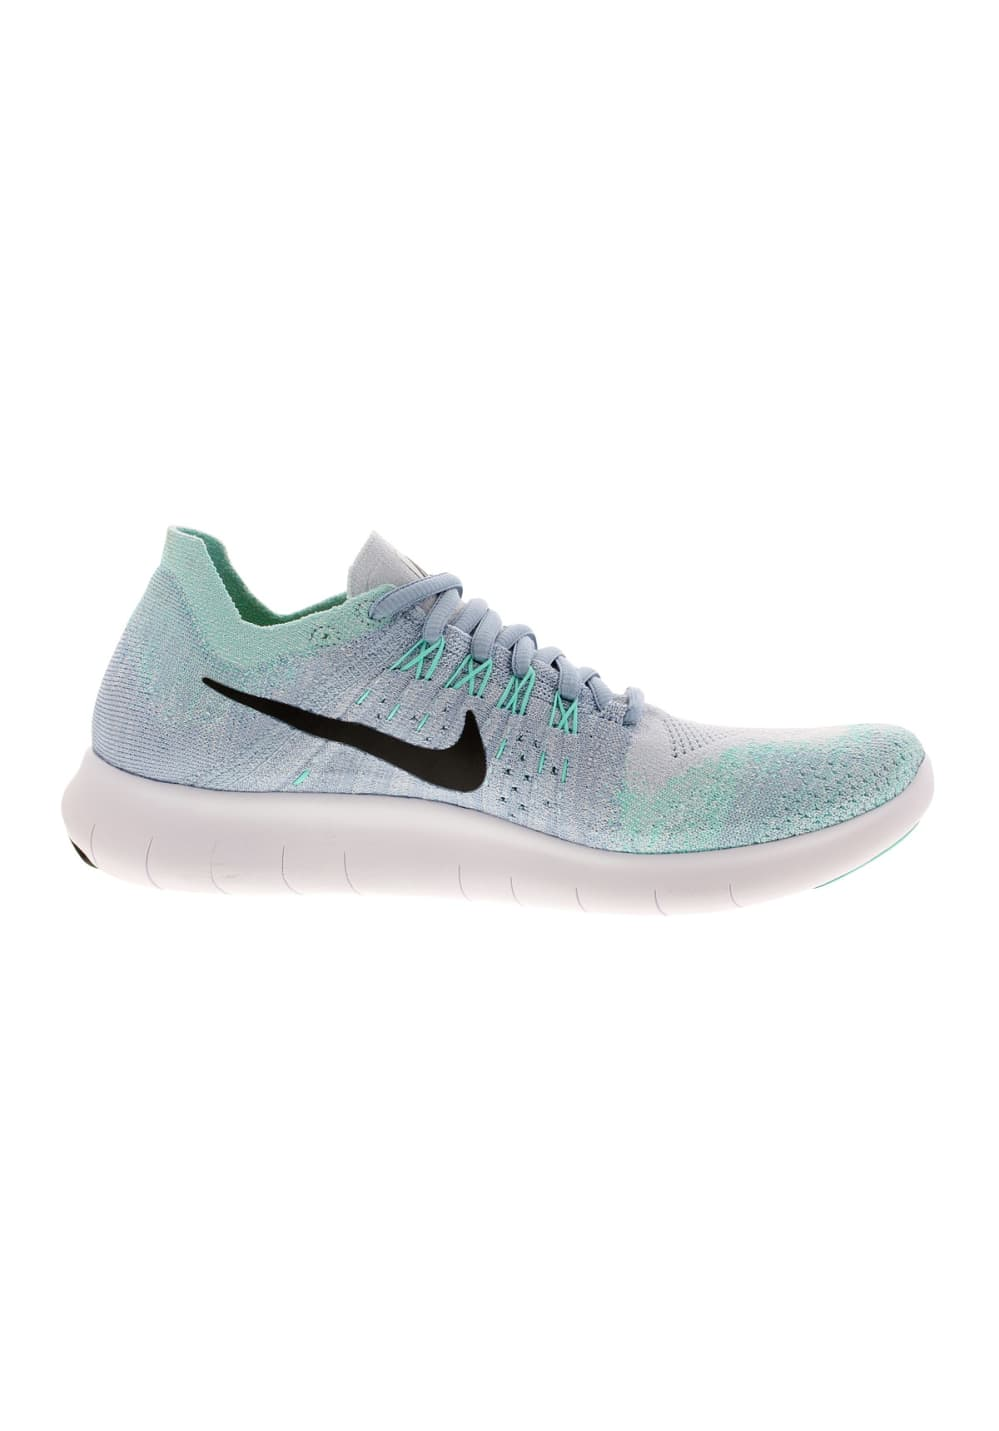 best loved b0cbd 31632 Nike Free RN Flyknit 2017 - Running shoes for Women - Blue